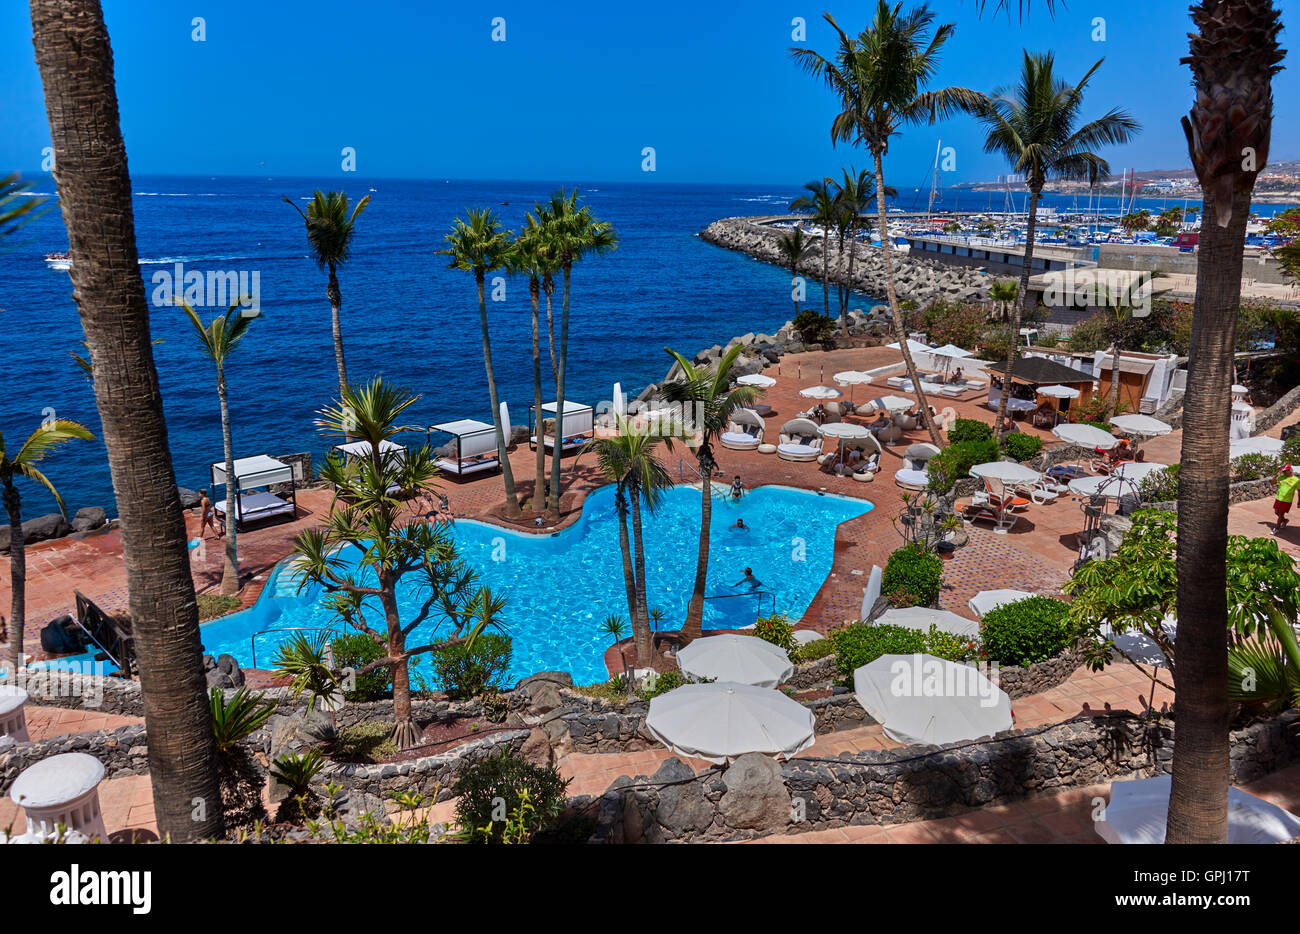 hotel jardin tropical costa adeje tenerife stock photo 117180780 alamy. Black Bedroom Furniture Sets. Home Design Ideas